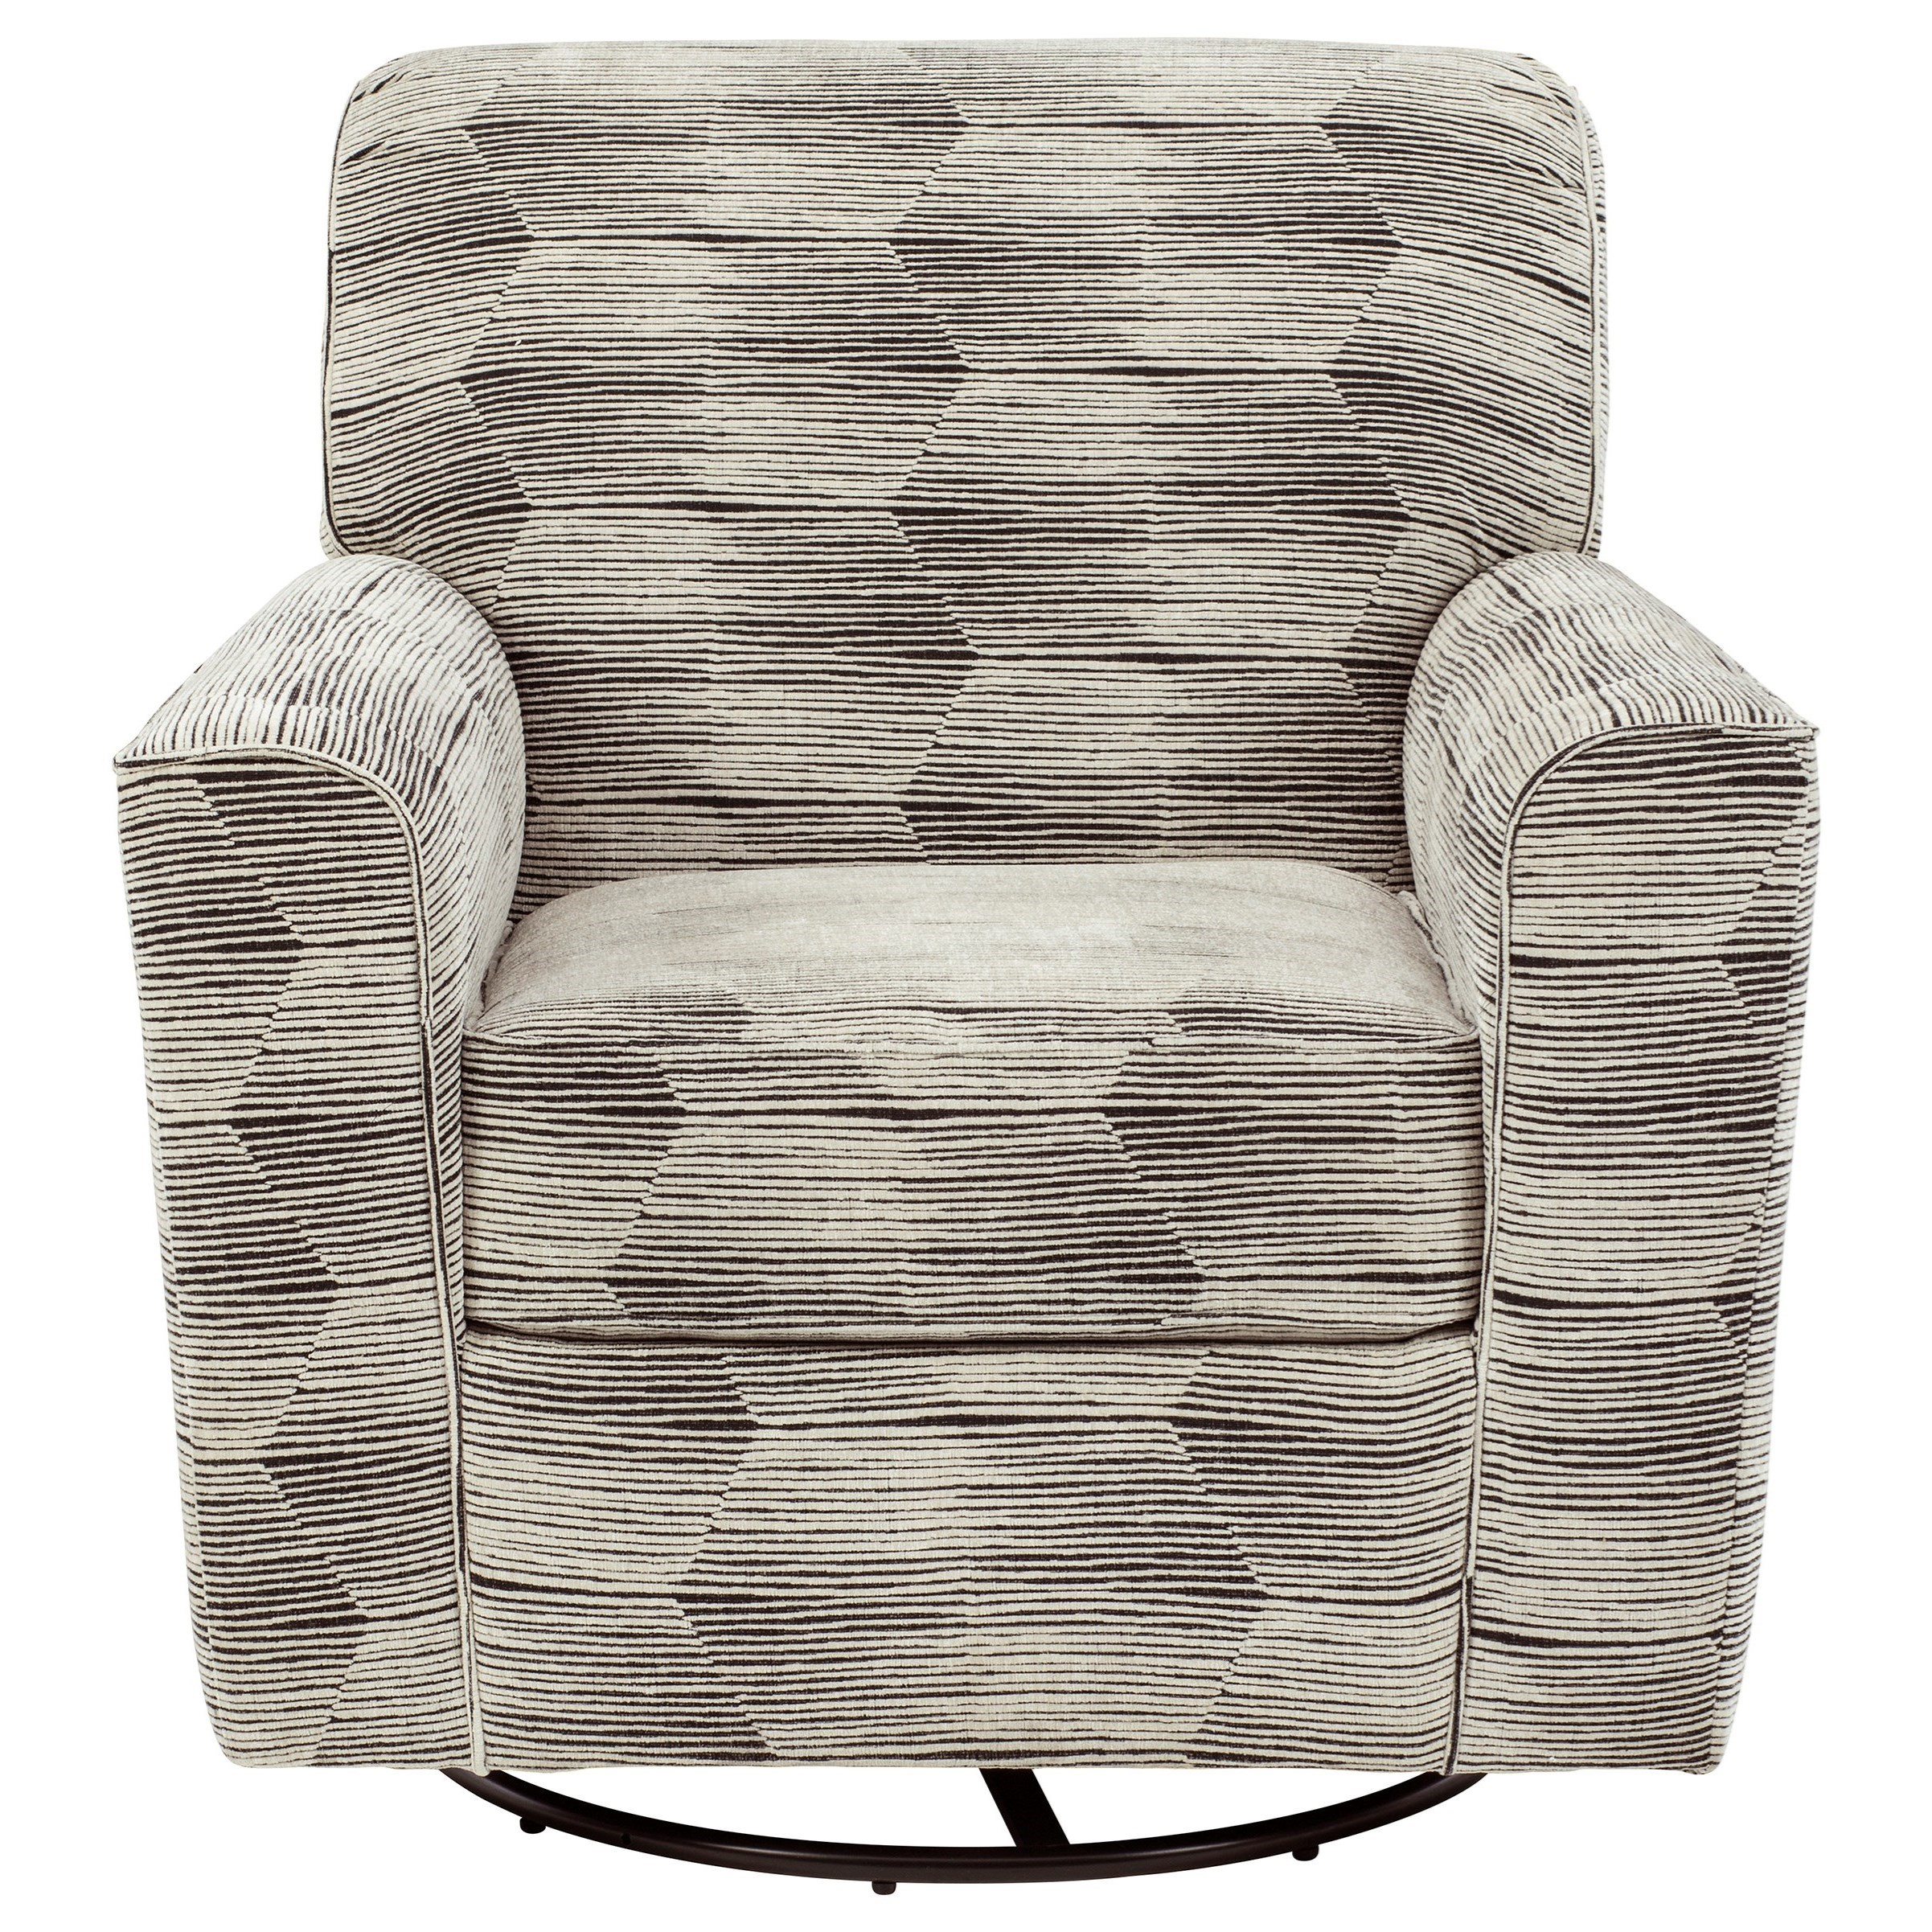 Callisburg Swivel Glider Accent Chair by Benchcraft at Simply Home by Lindy's